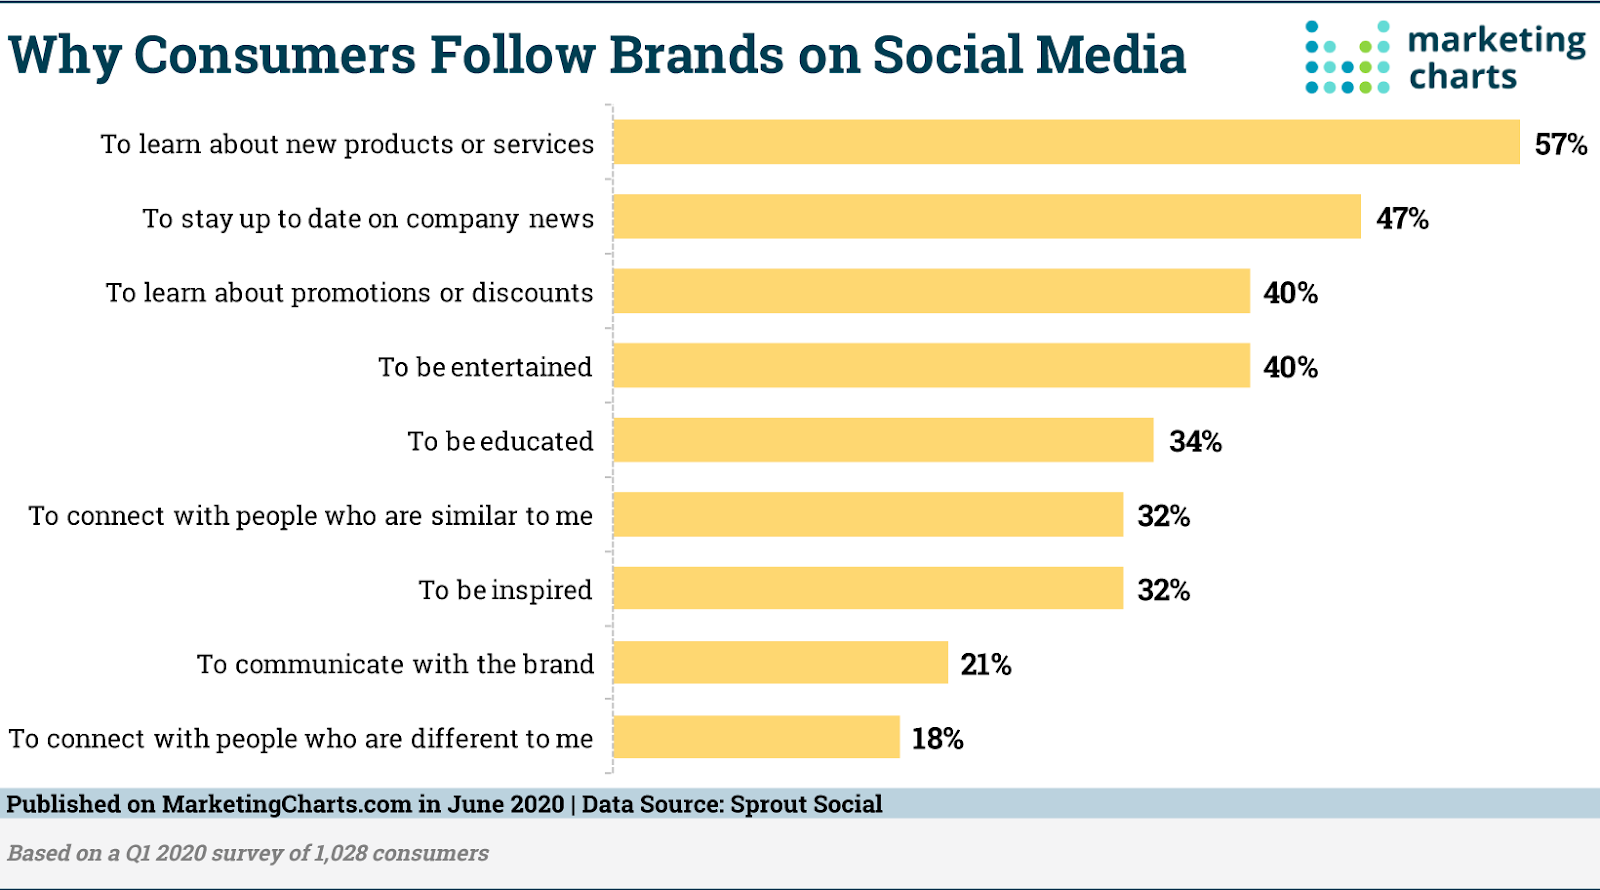 Consumer follow brands on social media research by Marketing charts